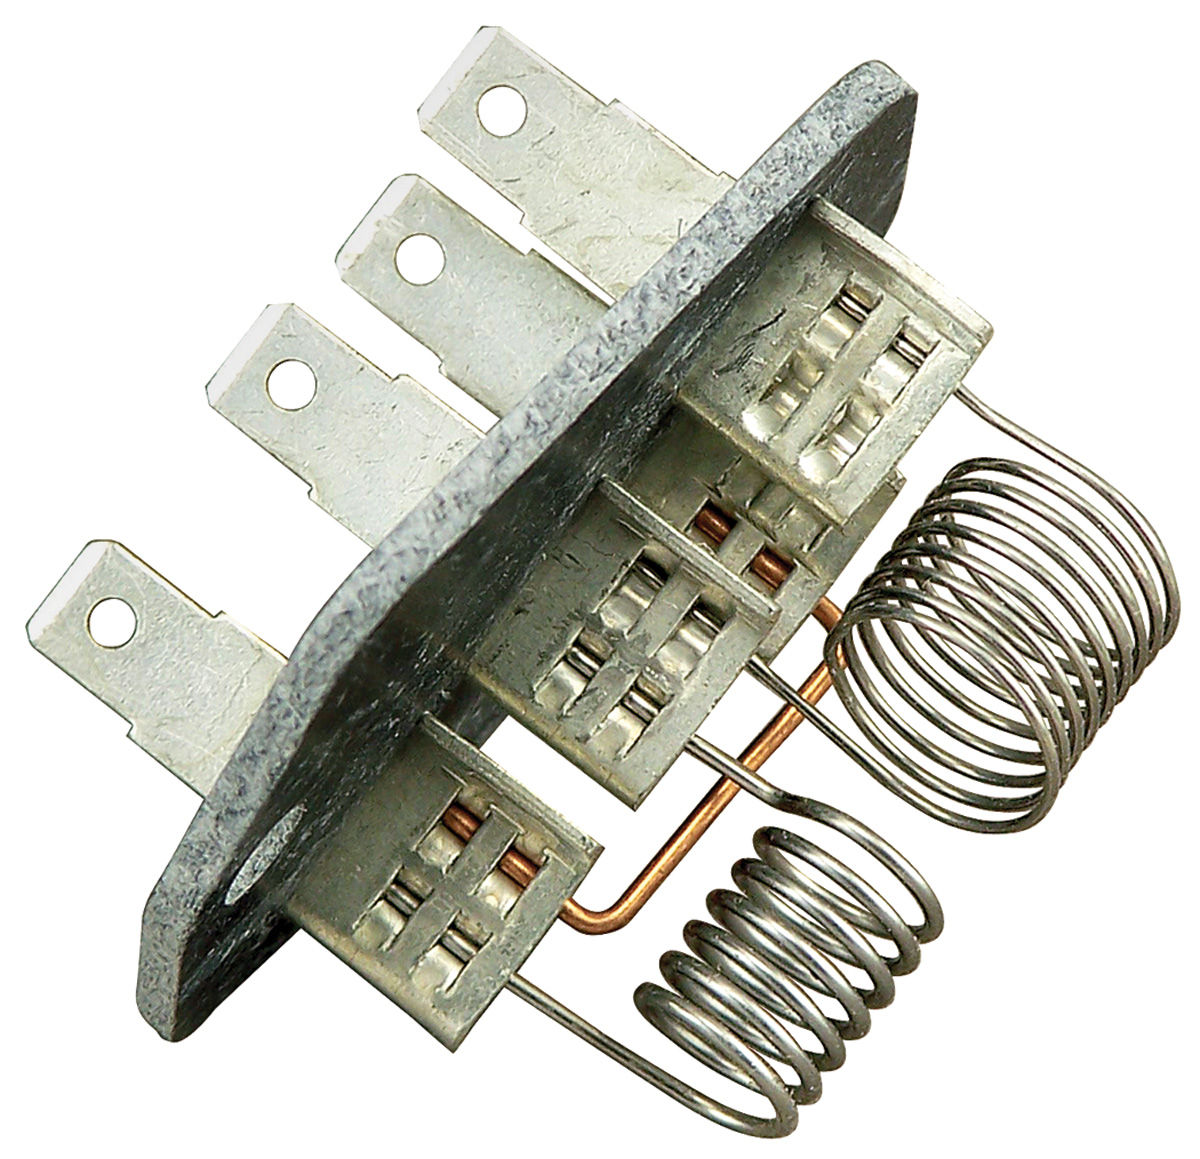 hight resolution of grand prix blower motor resistor w o atc 4 prong tap to enlarge